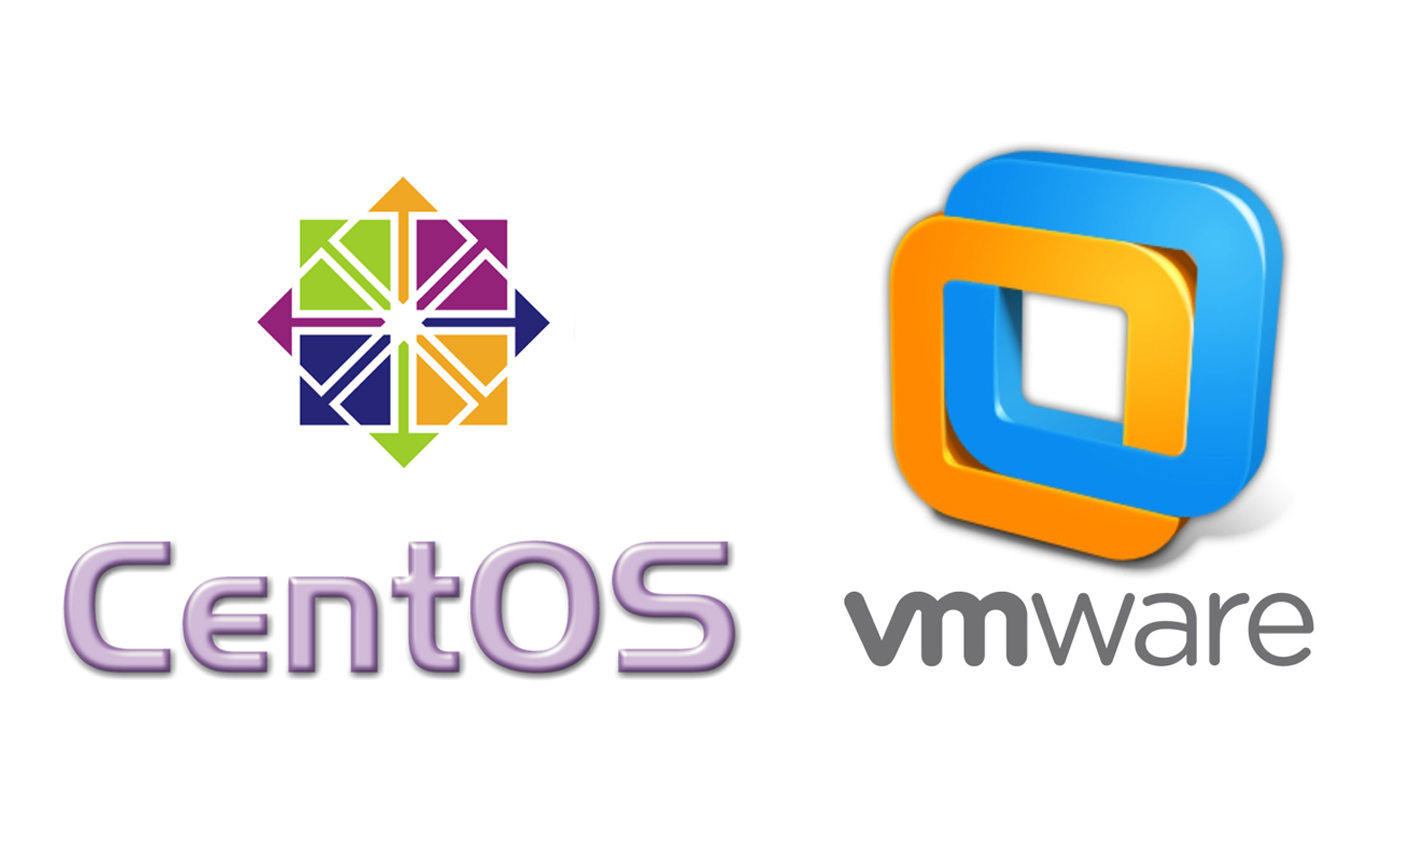 How to Install CentOS 7.6 in VMware Workstation 15 Pro – LinuxTutorials